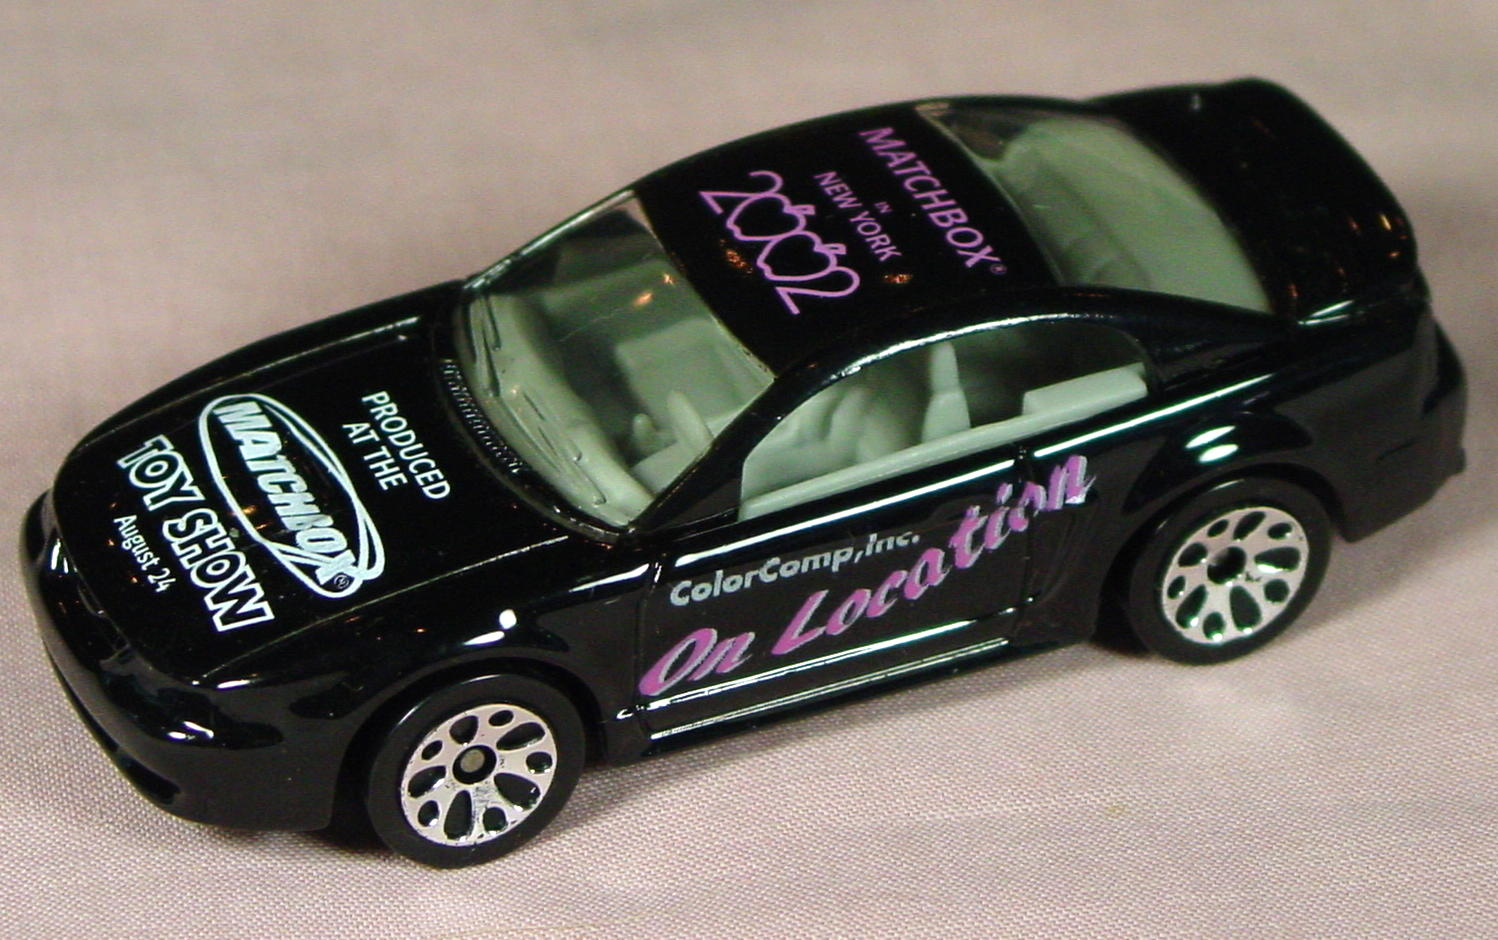 ASAP-CCI 17 I 30 - 99 Ford Mustang Black pink MBX NY 2002 on location CCI